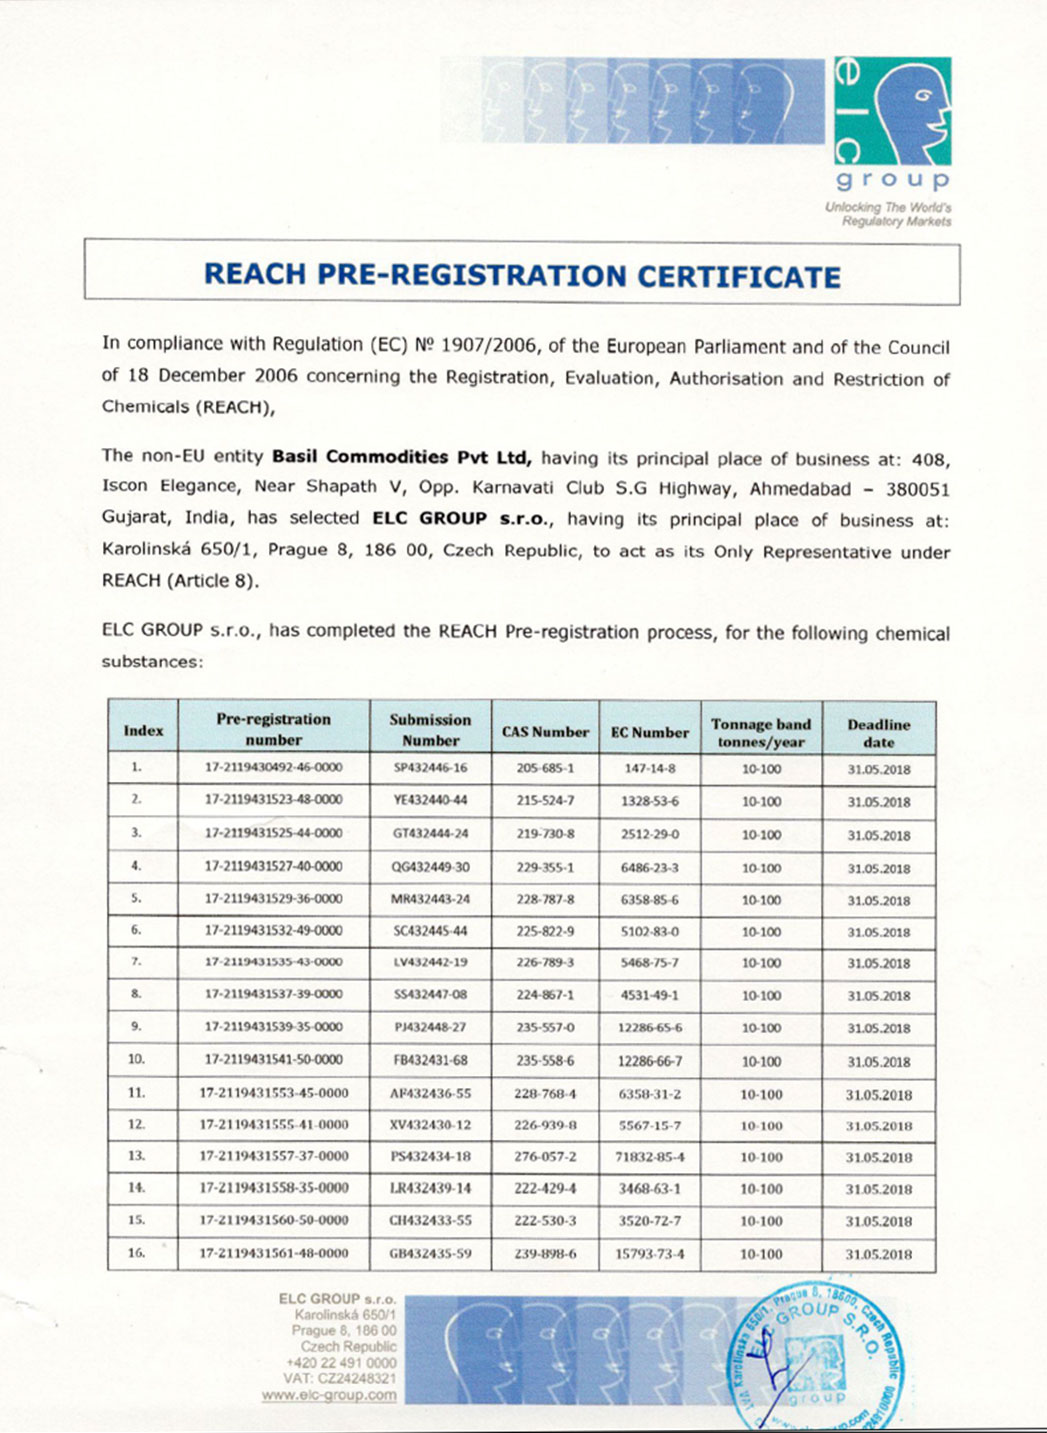 REACH PRE-REGISTRATION CERTIFICATE